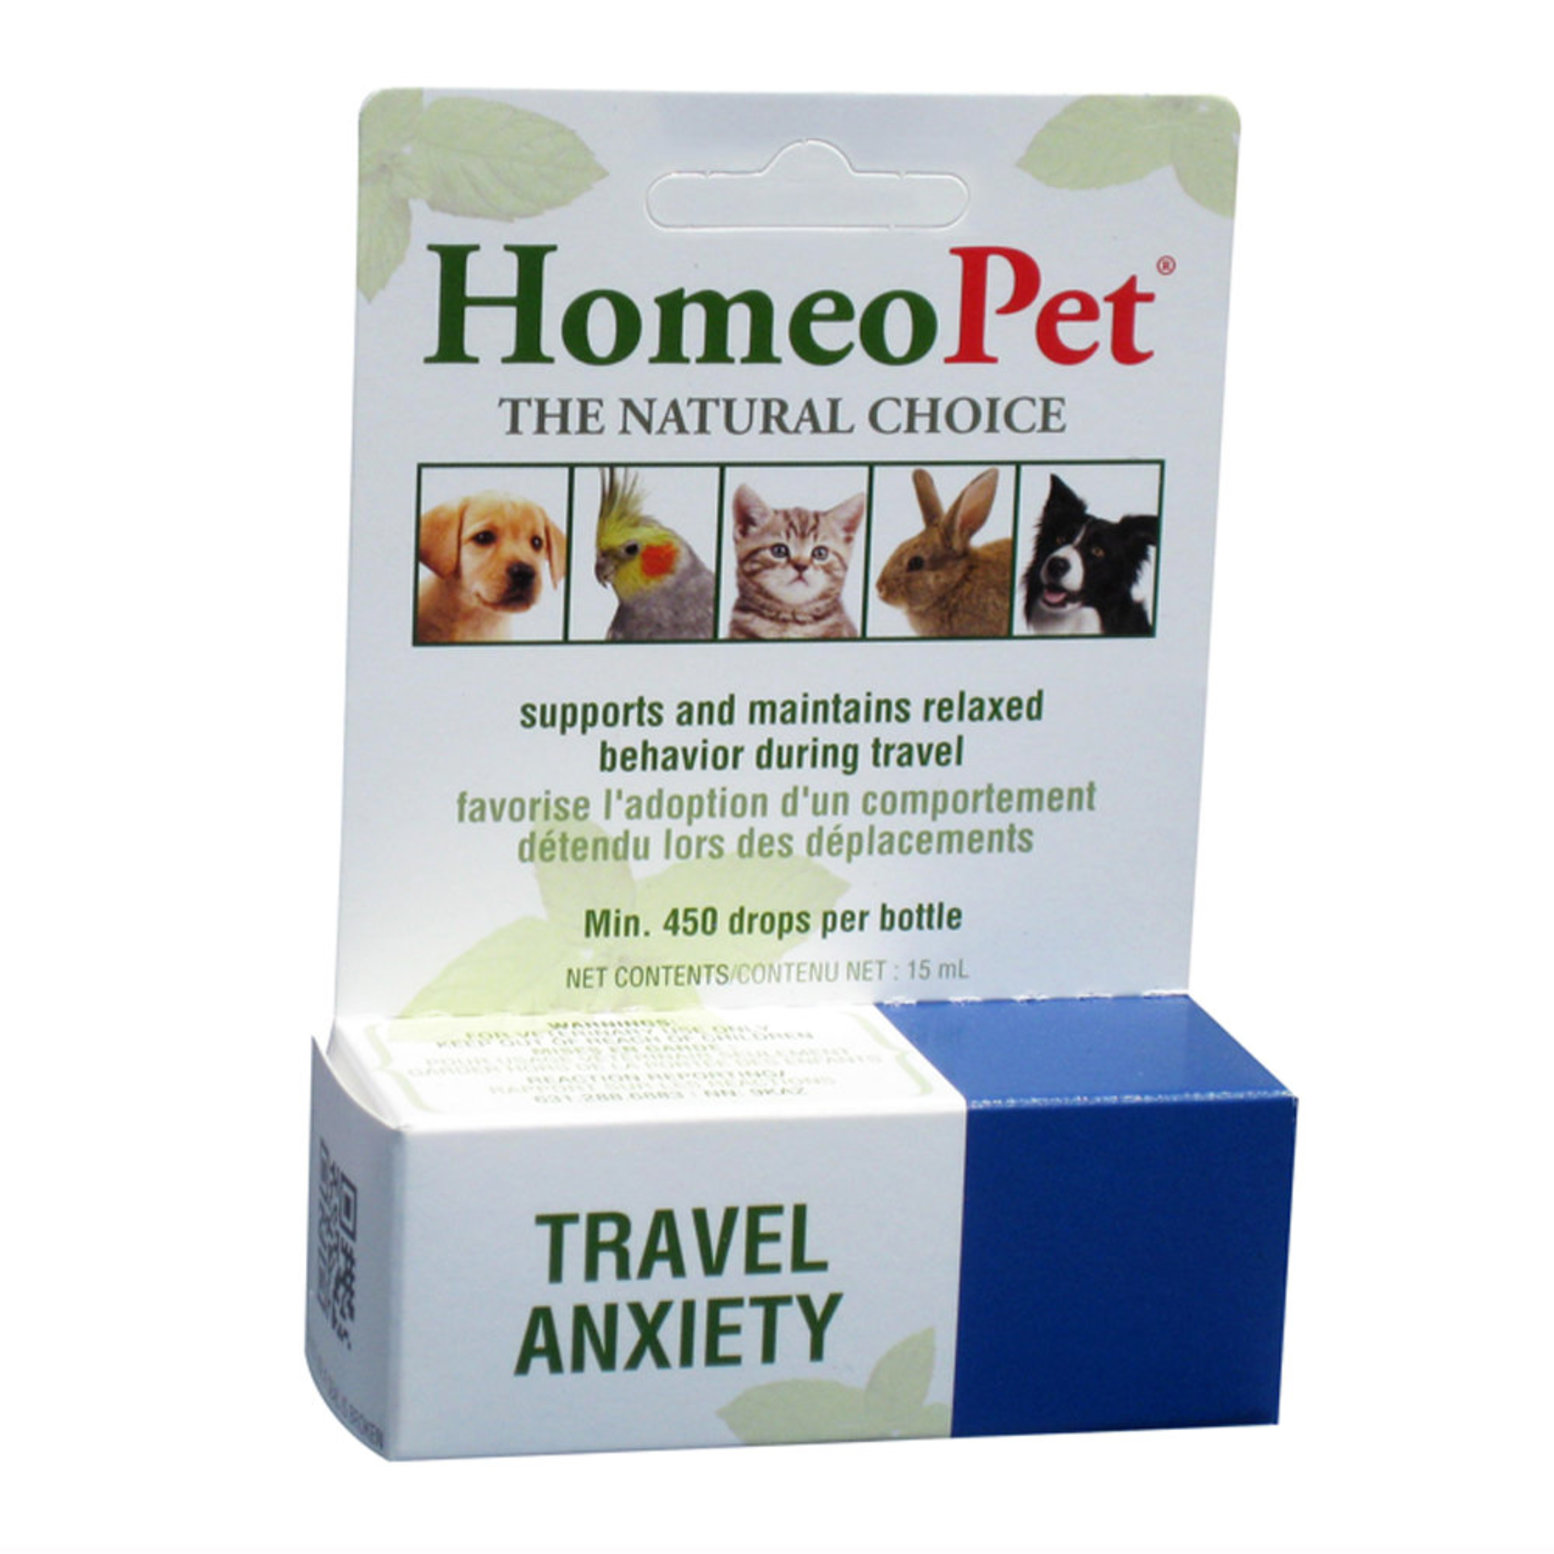 HomeoPet,Travel Anxiety Relief - 15 mL - Ren's Pets